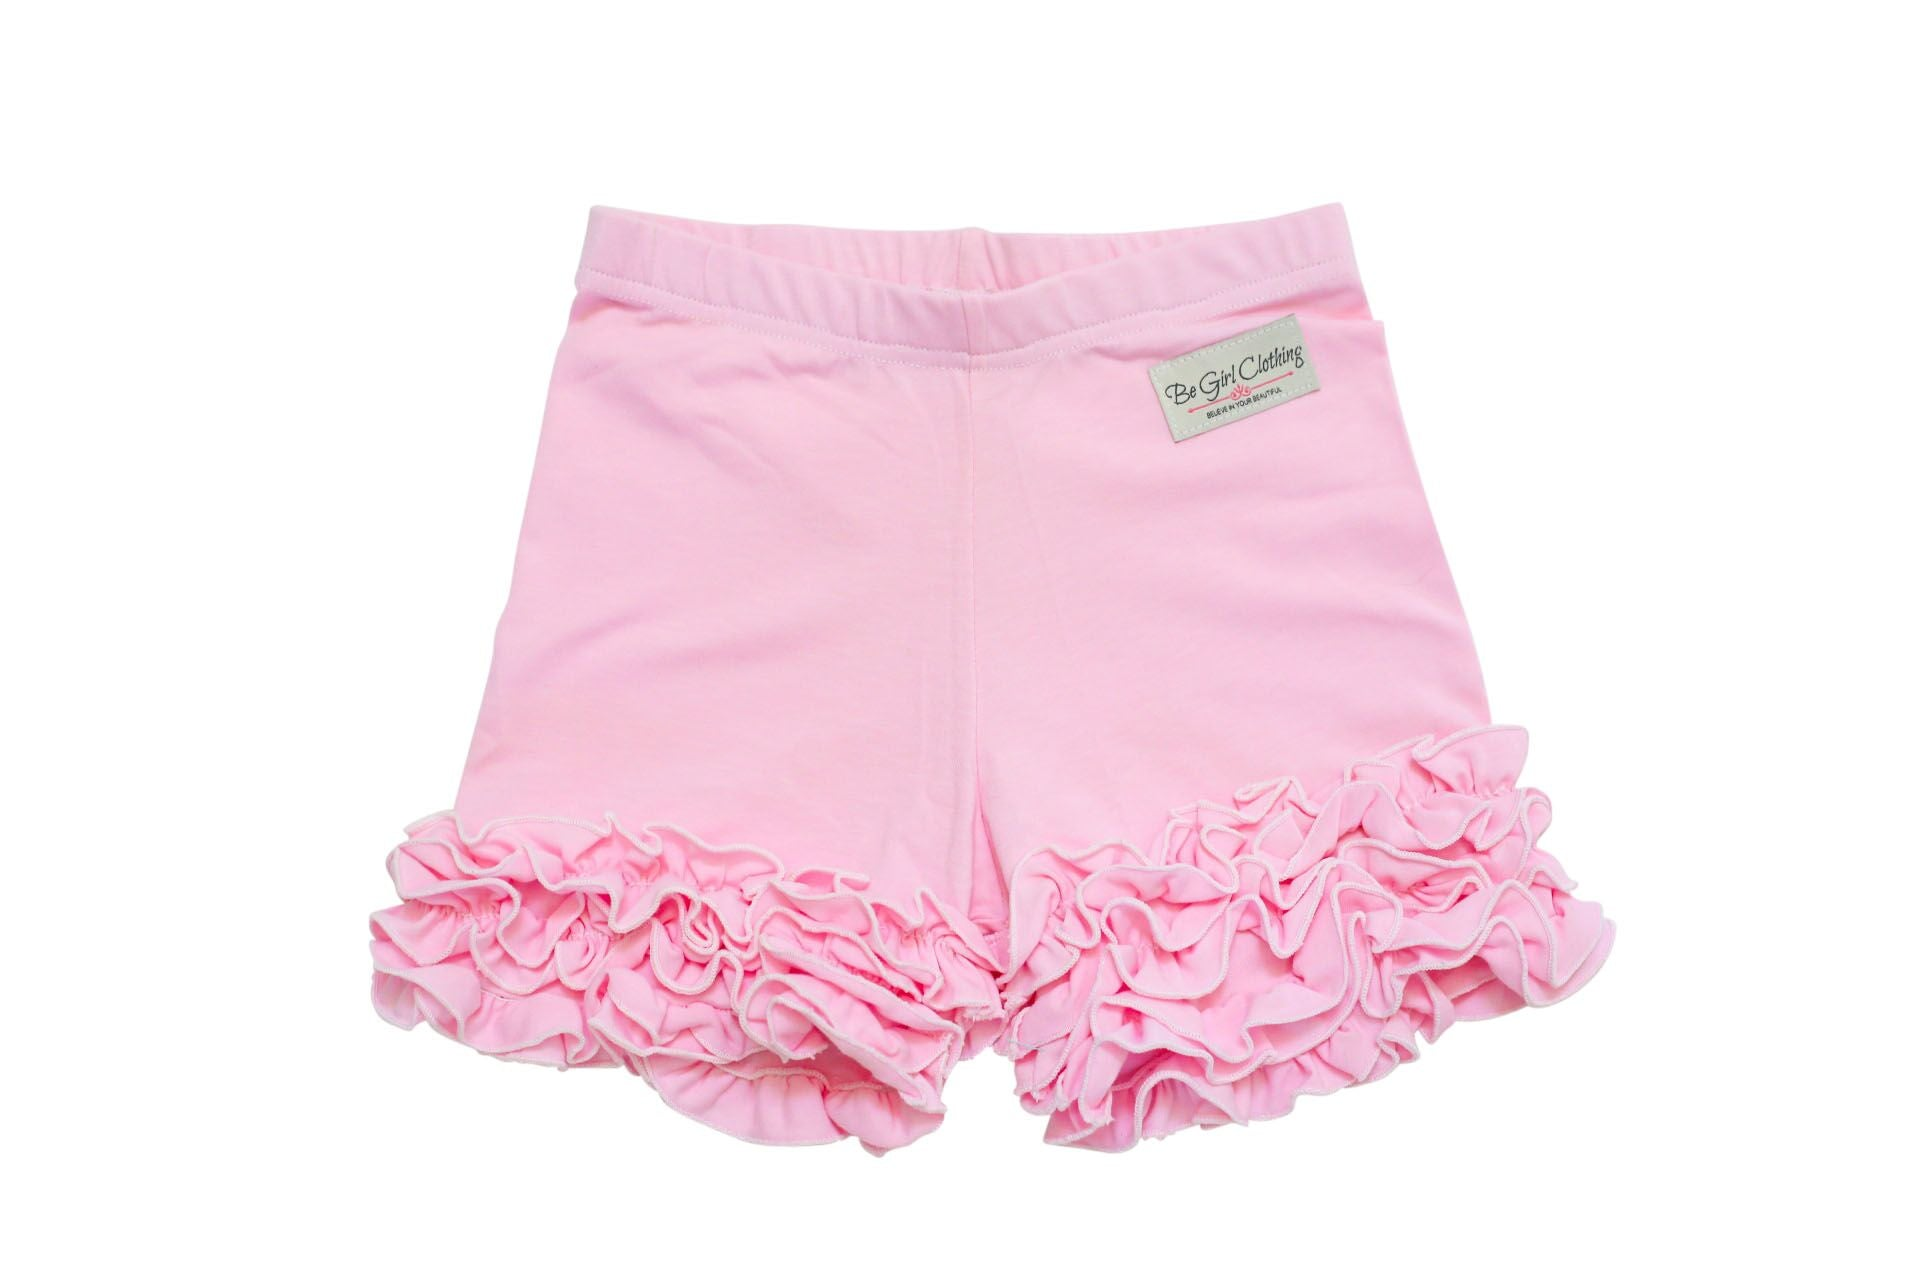 Be Girl Clothing Playtime Ruffle Shorties